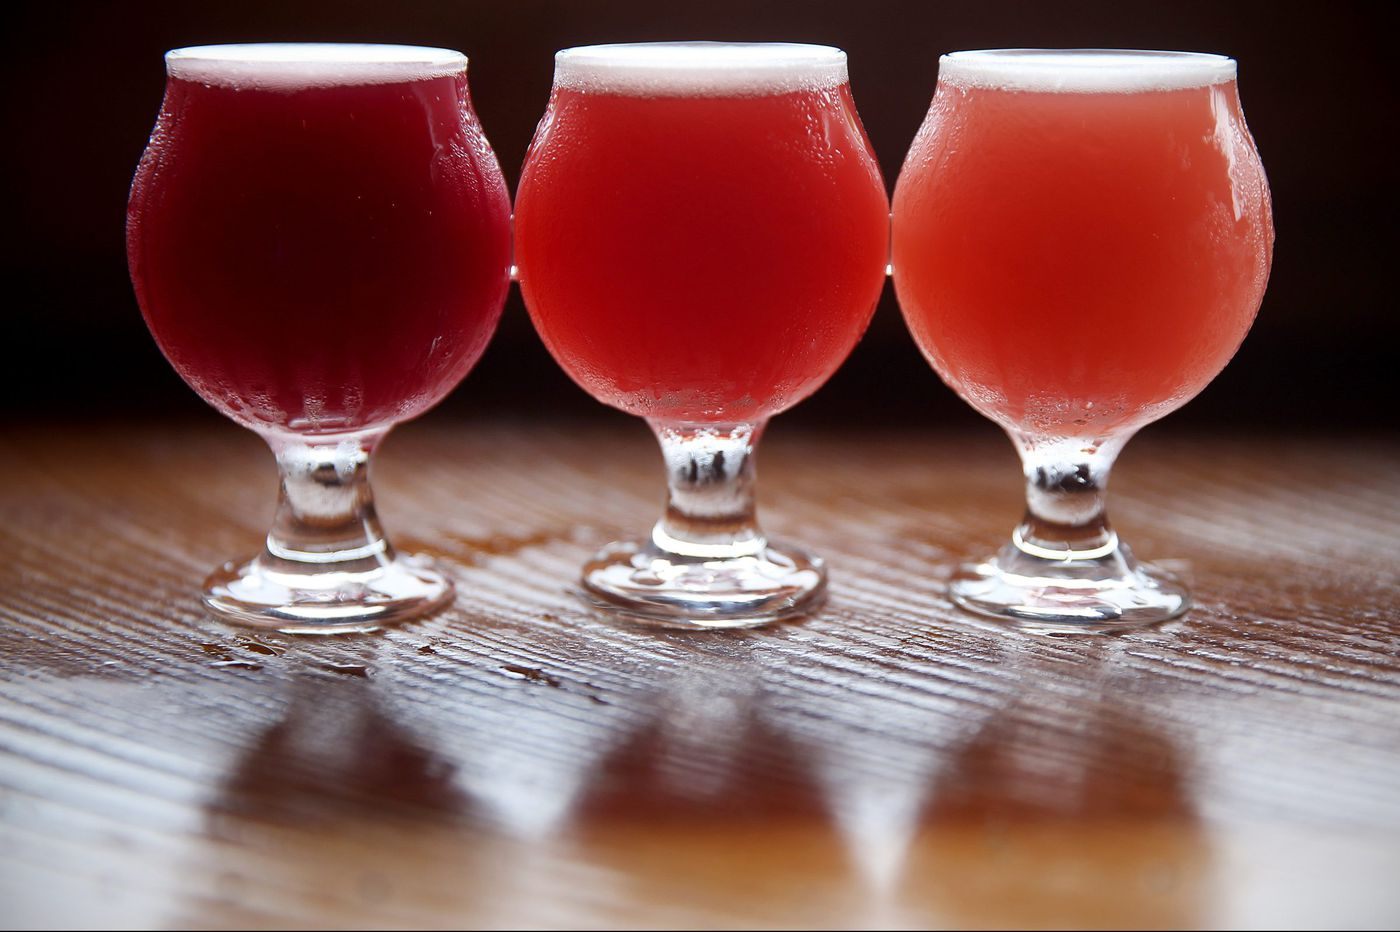 Sipping Delaware beer coast's colorful sours